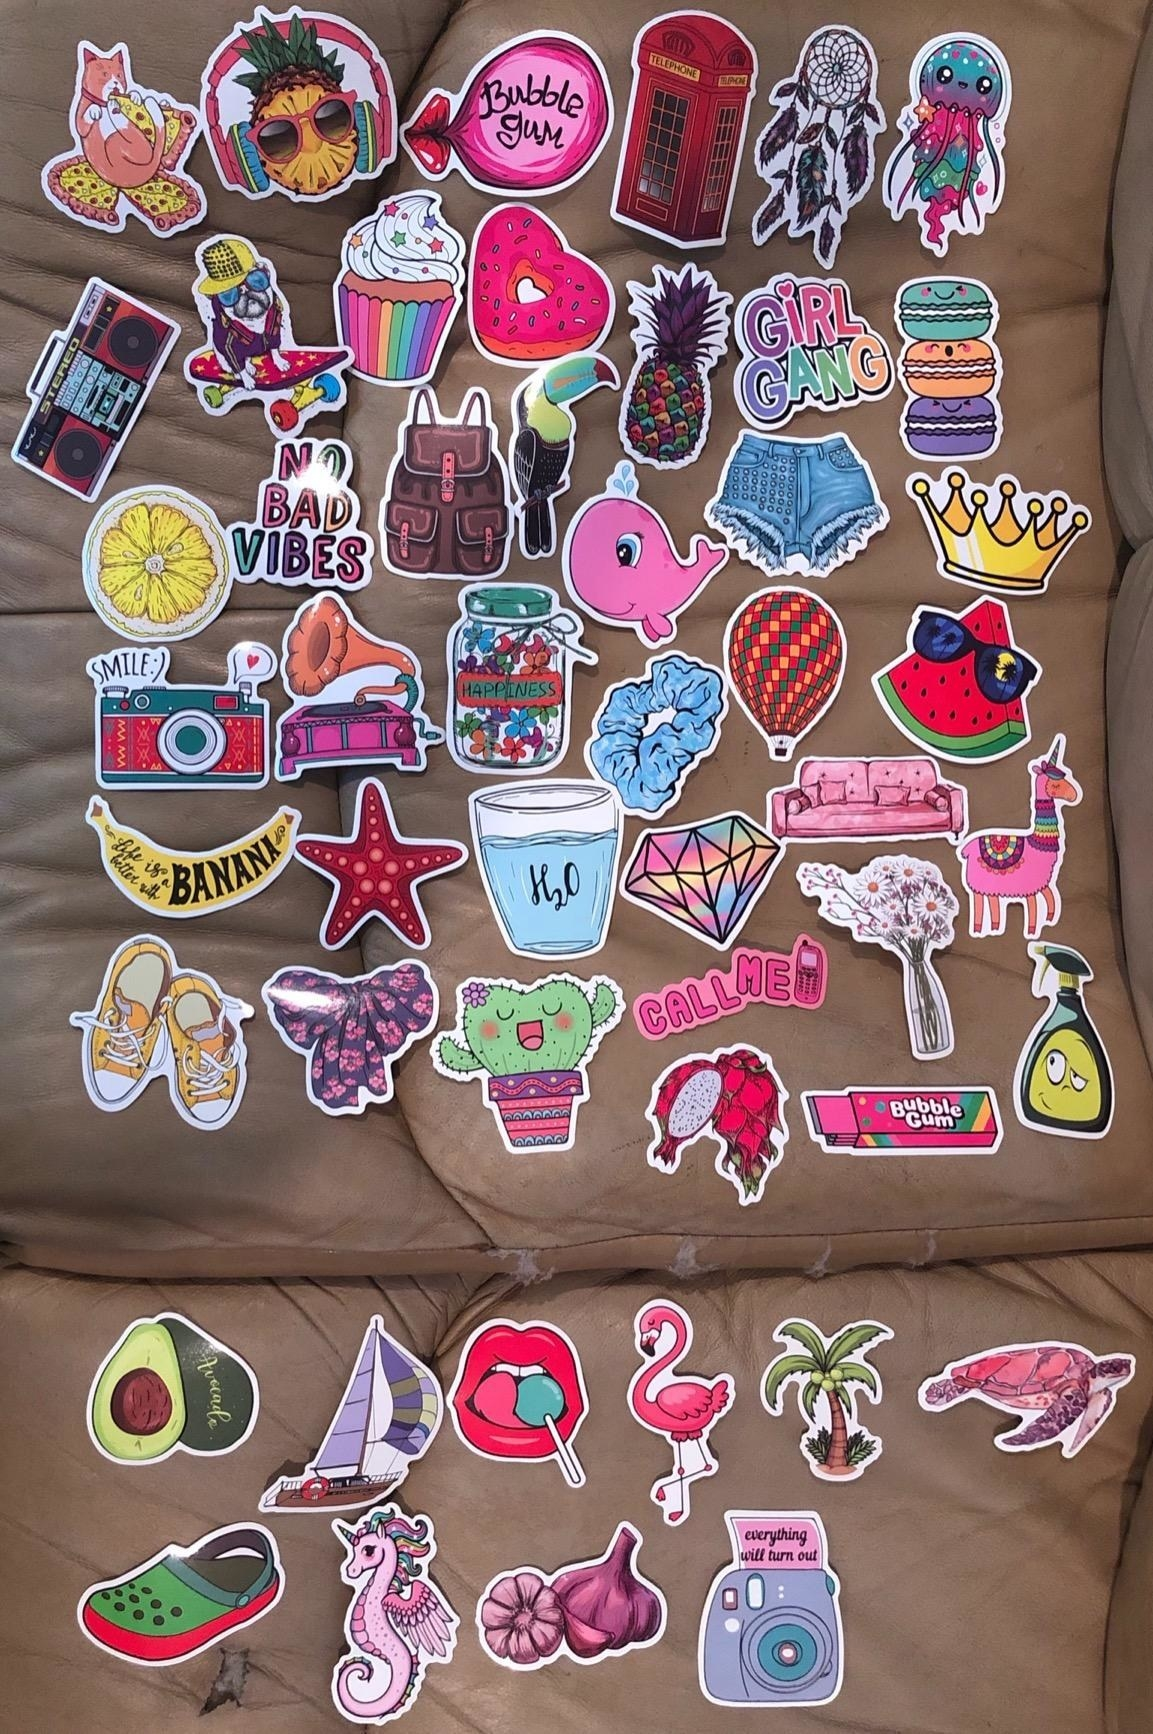 Reviewer photo of the stickers